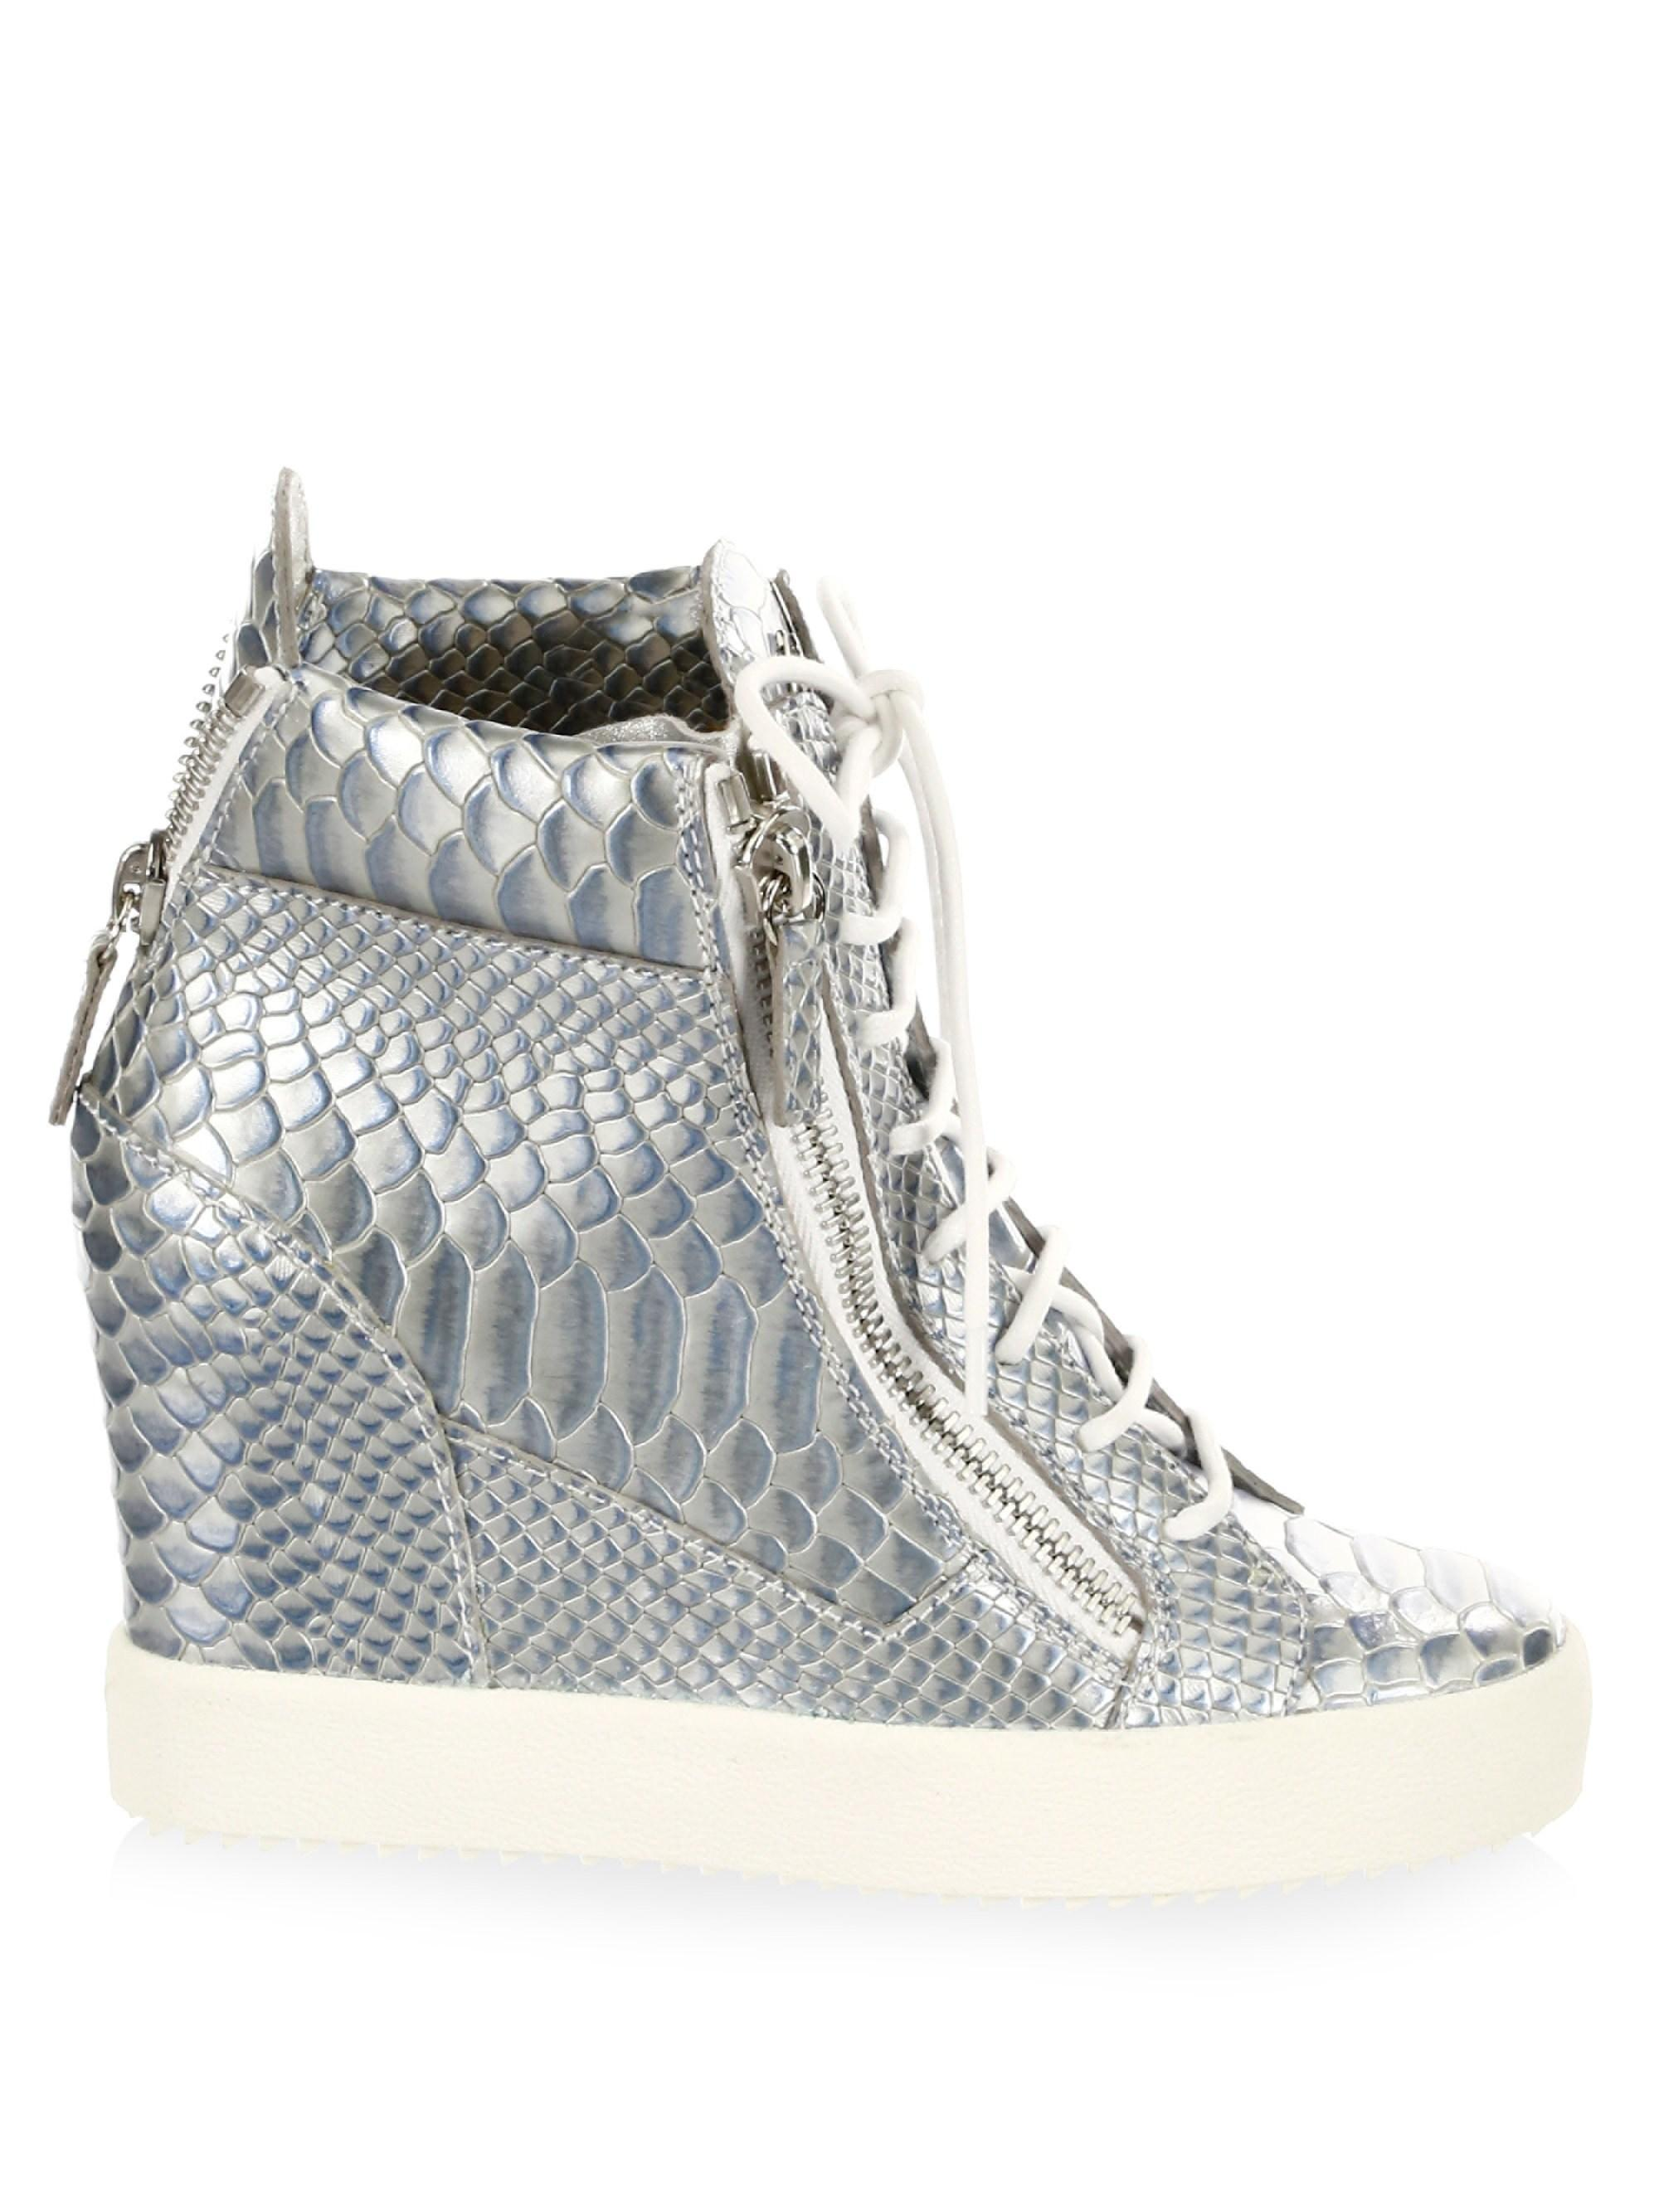 3eedba7e9a834 Giuseppe Zanotti Women's Lamay Lorenz Leather Wedge Sneakers - Ice ...